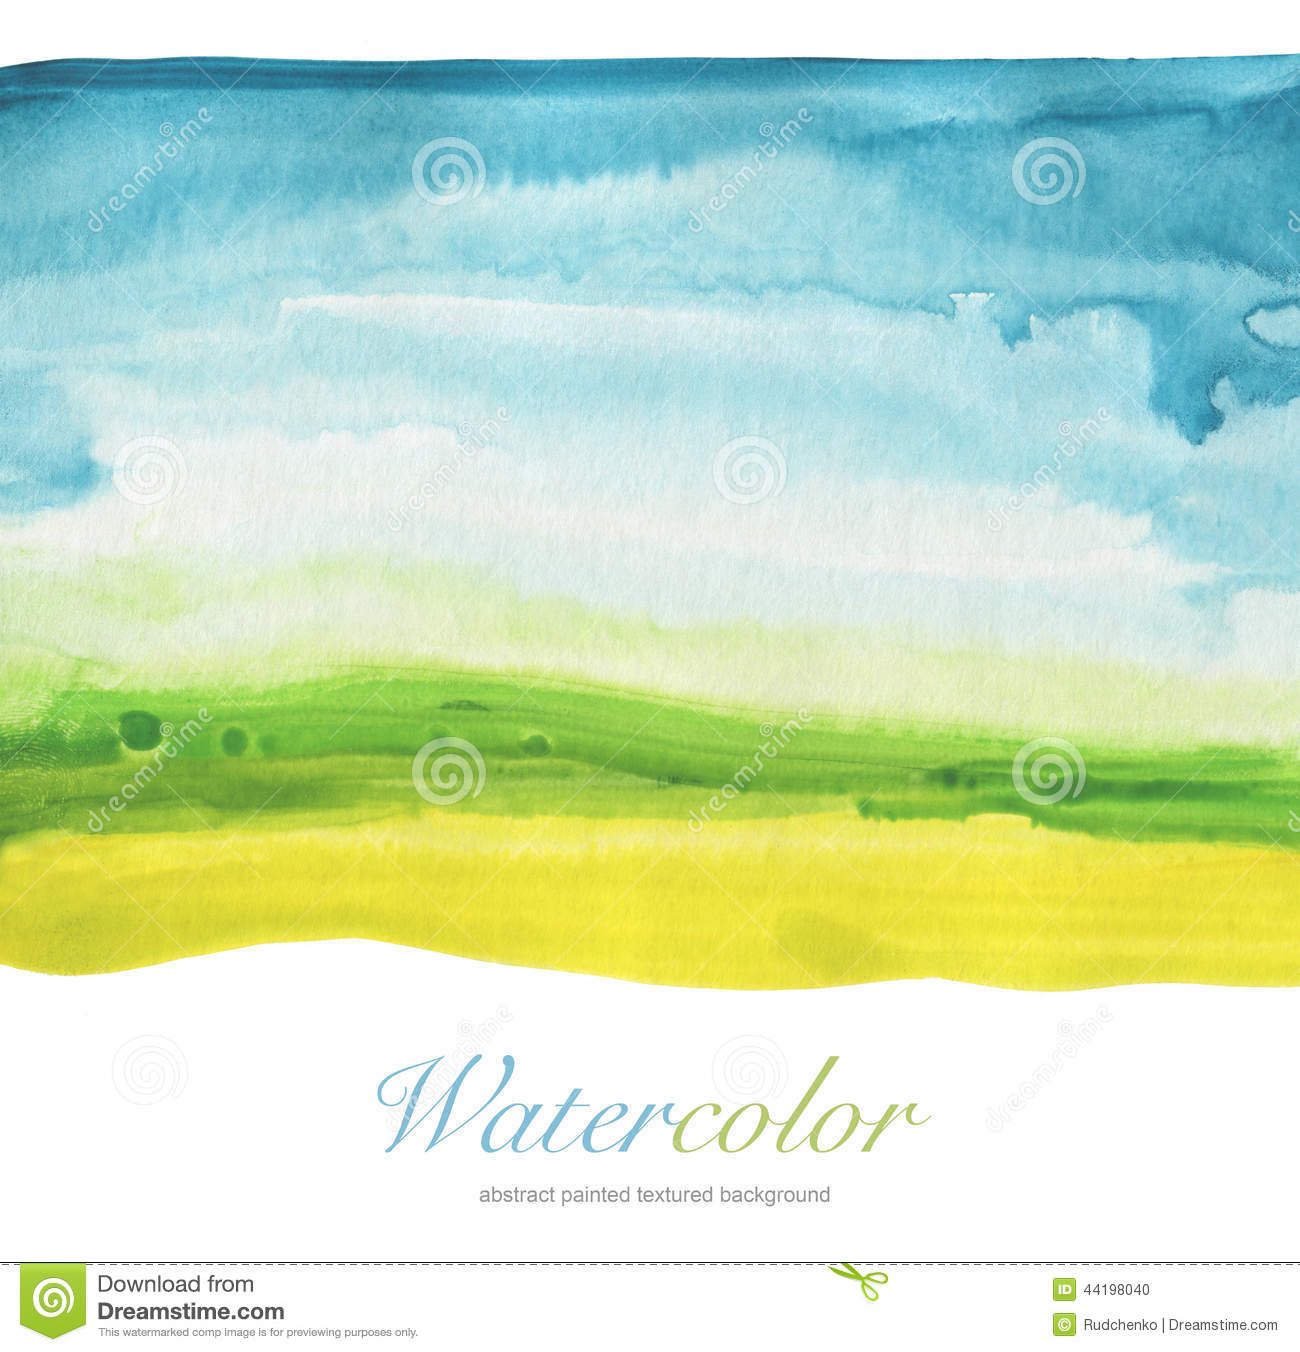 Abstract watercolor hand painted landscape background.